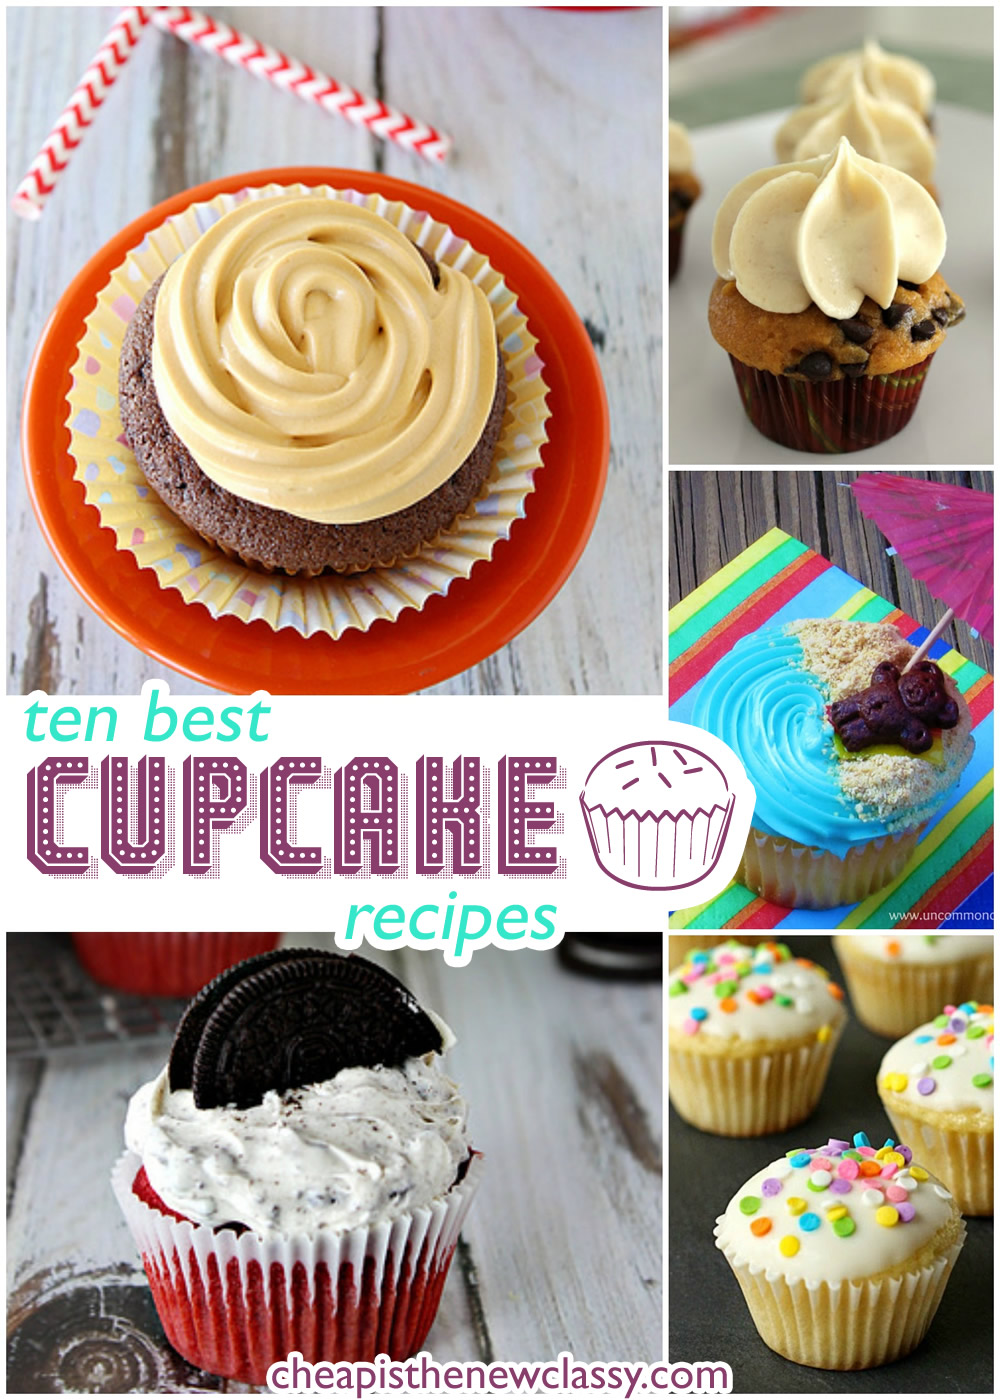 10 Cupcake Recipes To Help You Celebrate Cupcake Day | Cheap Is The New Classy